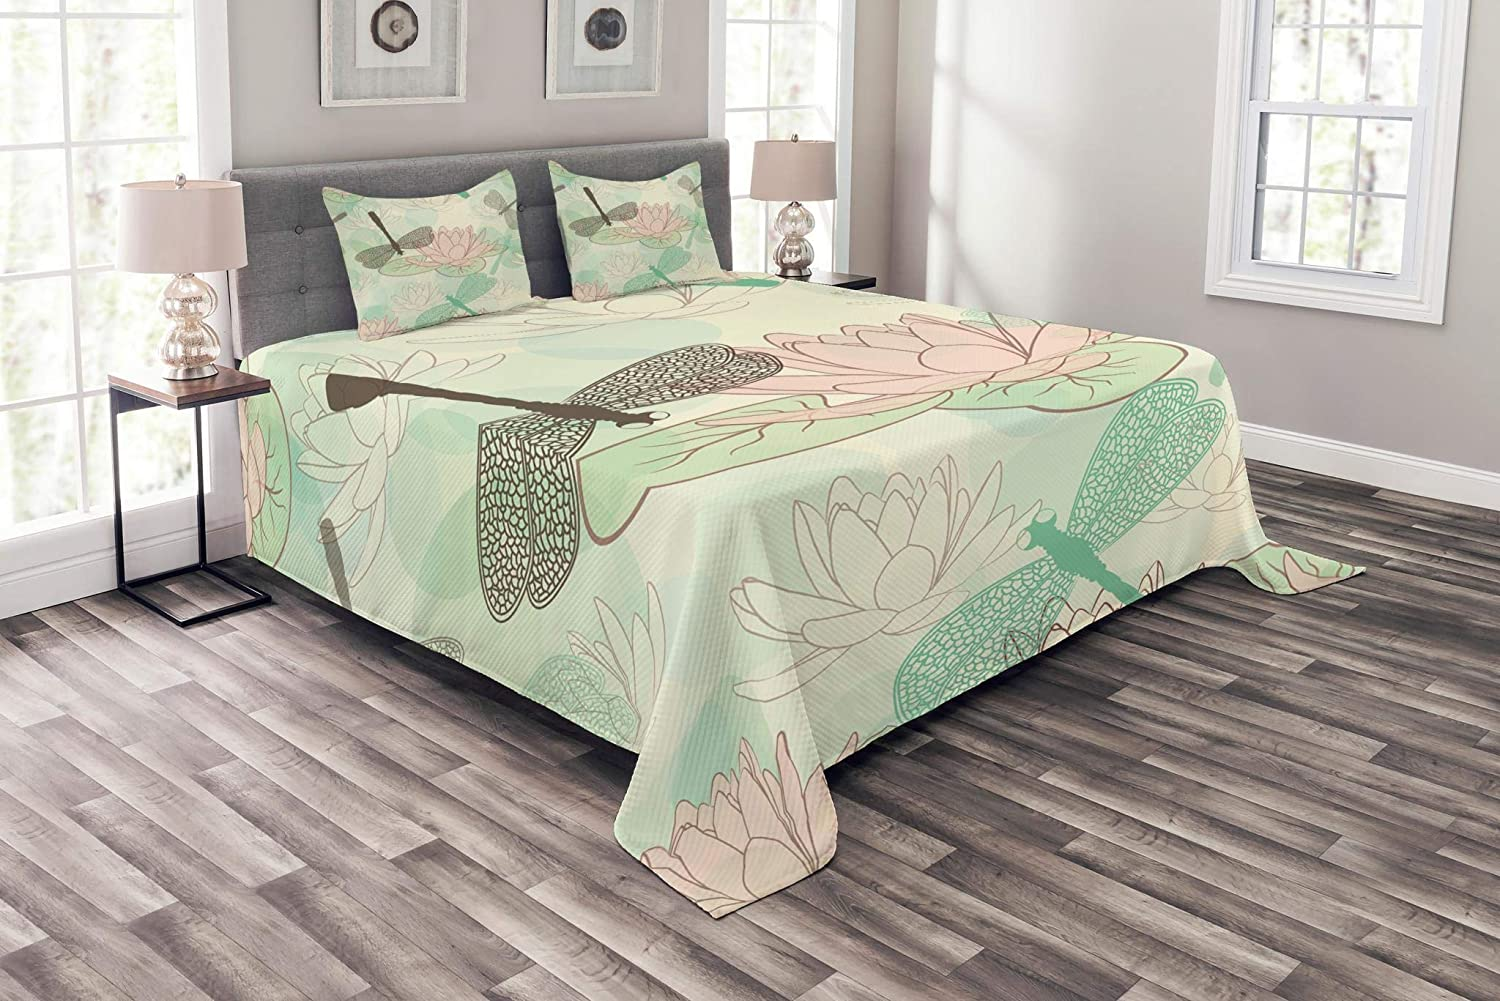 Lunarable Dragonfly Bedspread, Floating Water Lily and Dragonfly on The Lake in Soft Color Design Print, Decorative Quilted 3 Piece Coverlet Set with 2 Pillow Shams, Queen Size, Green Pink